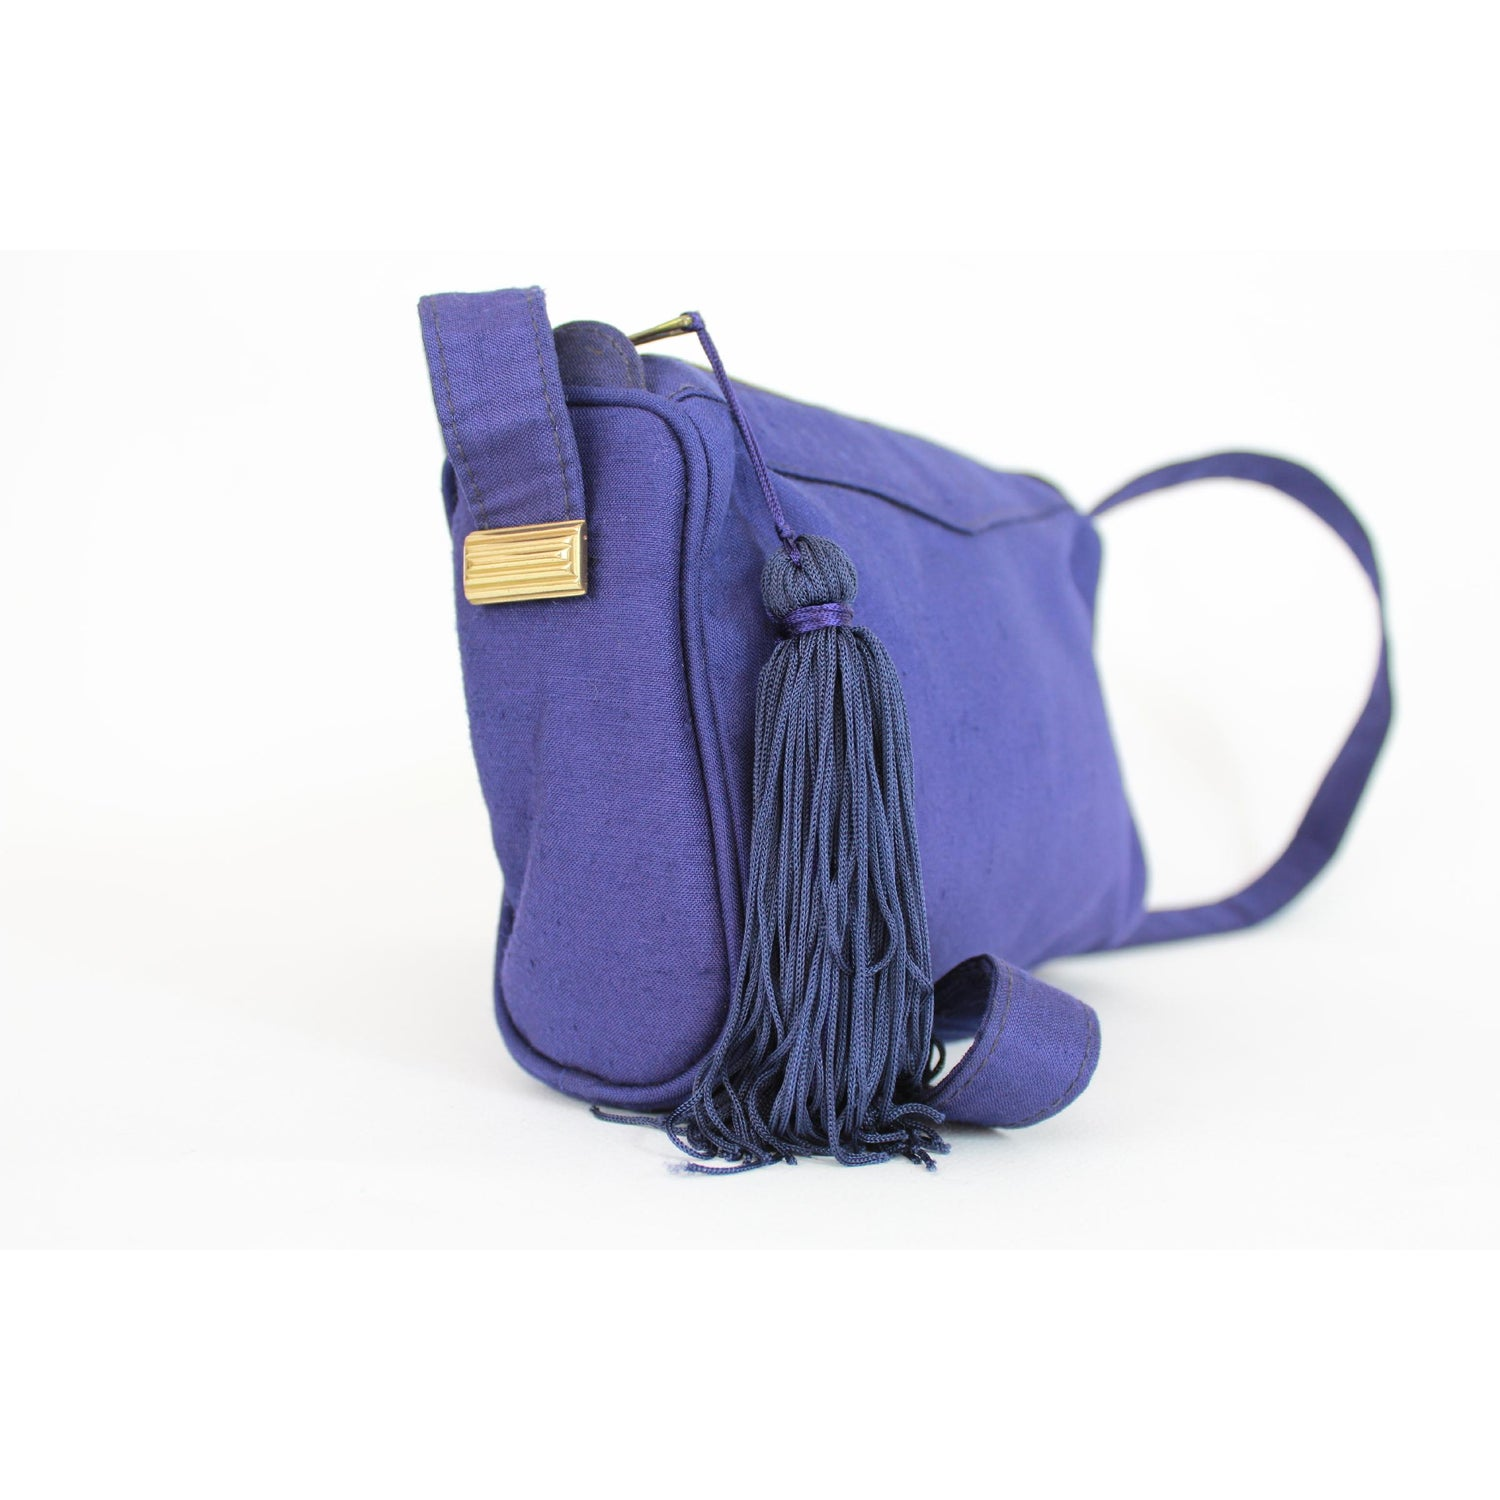 05df4f0e53 Gianni Versace Couture Purple Silk Shoulder Evening Bag 1980s For Sale at  1stdibs